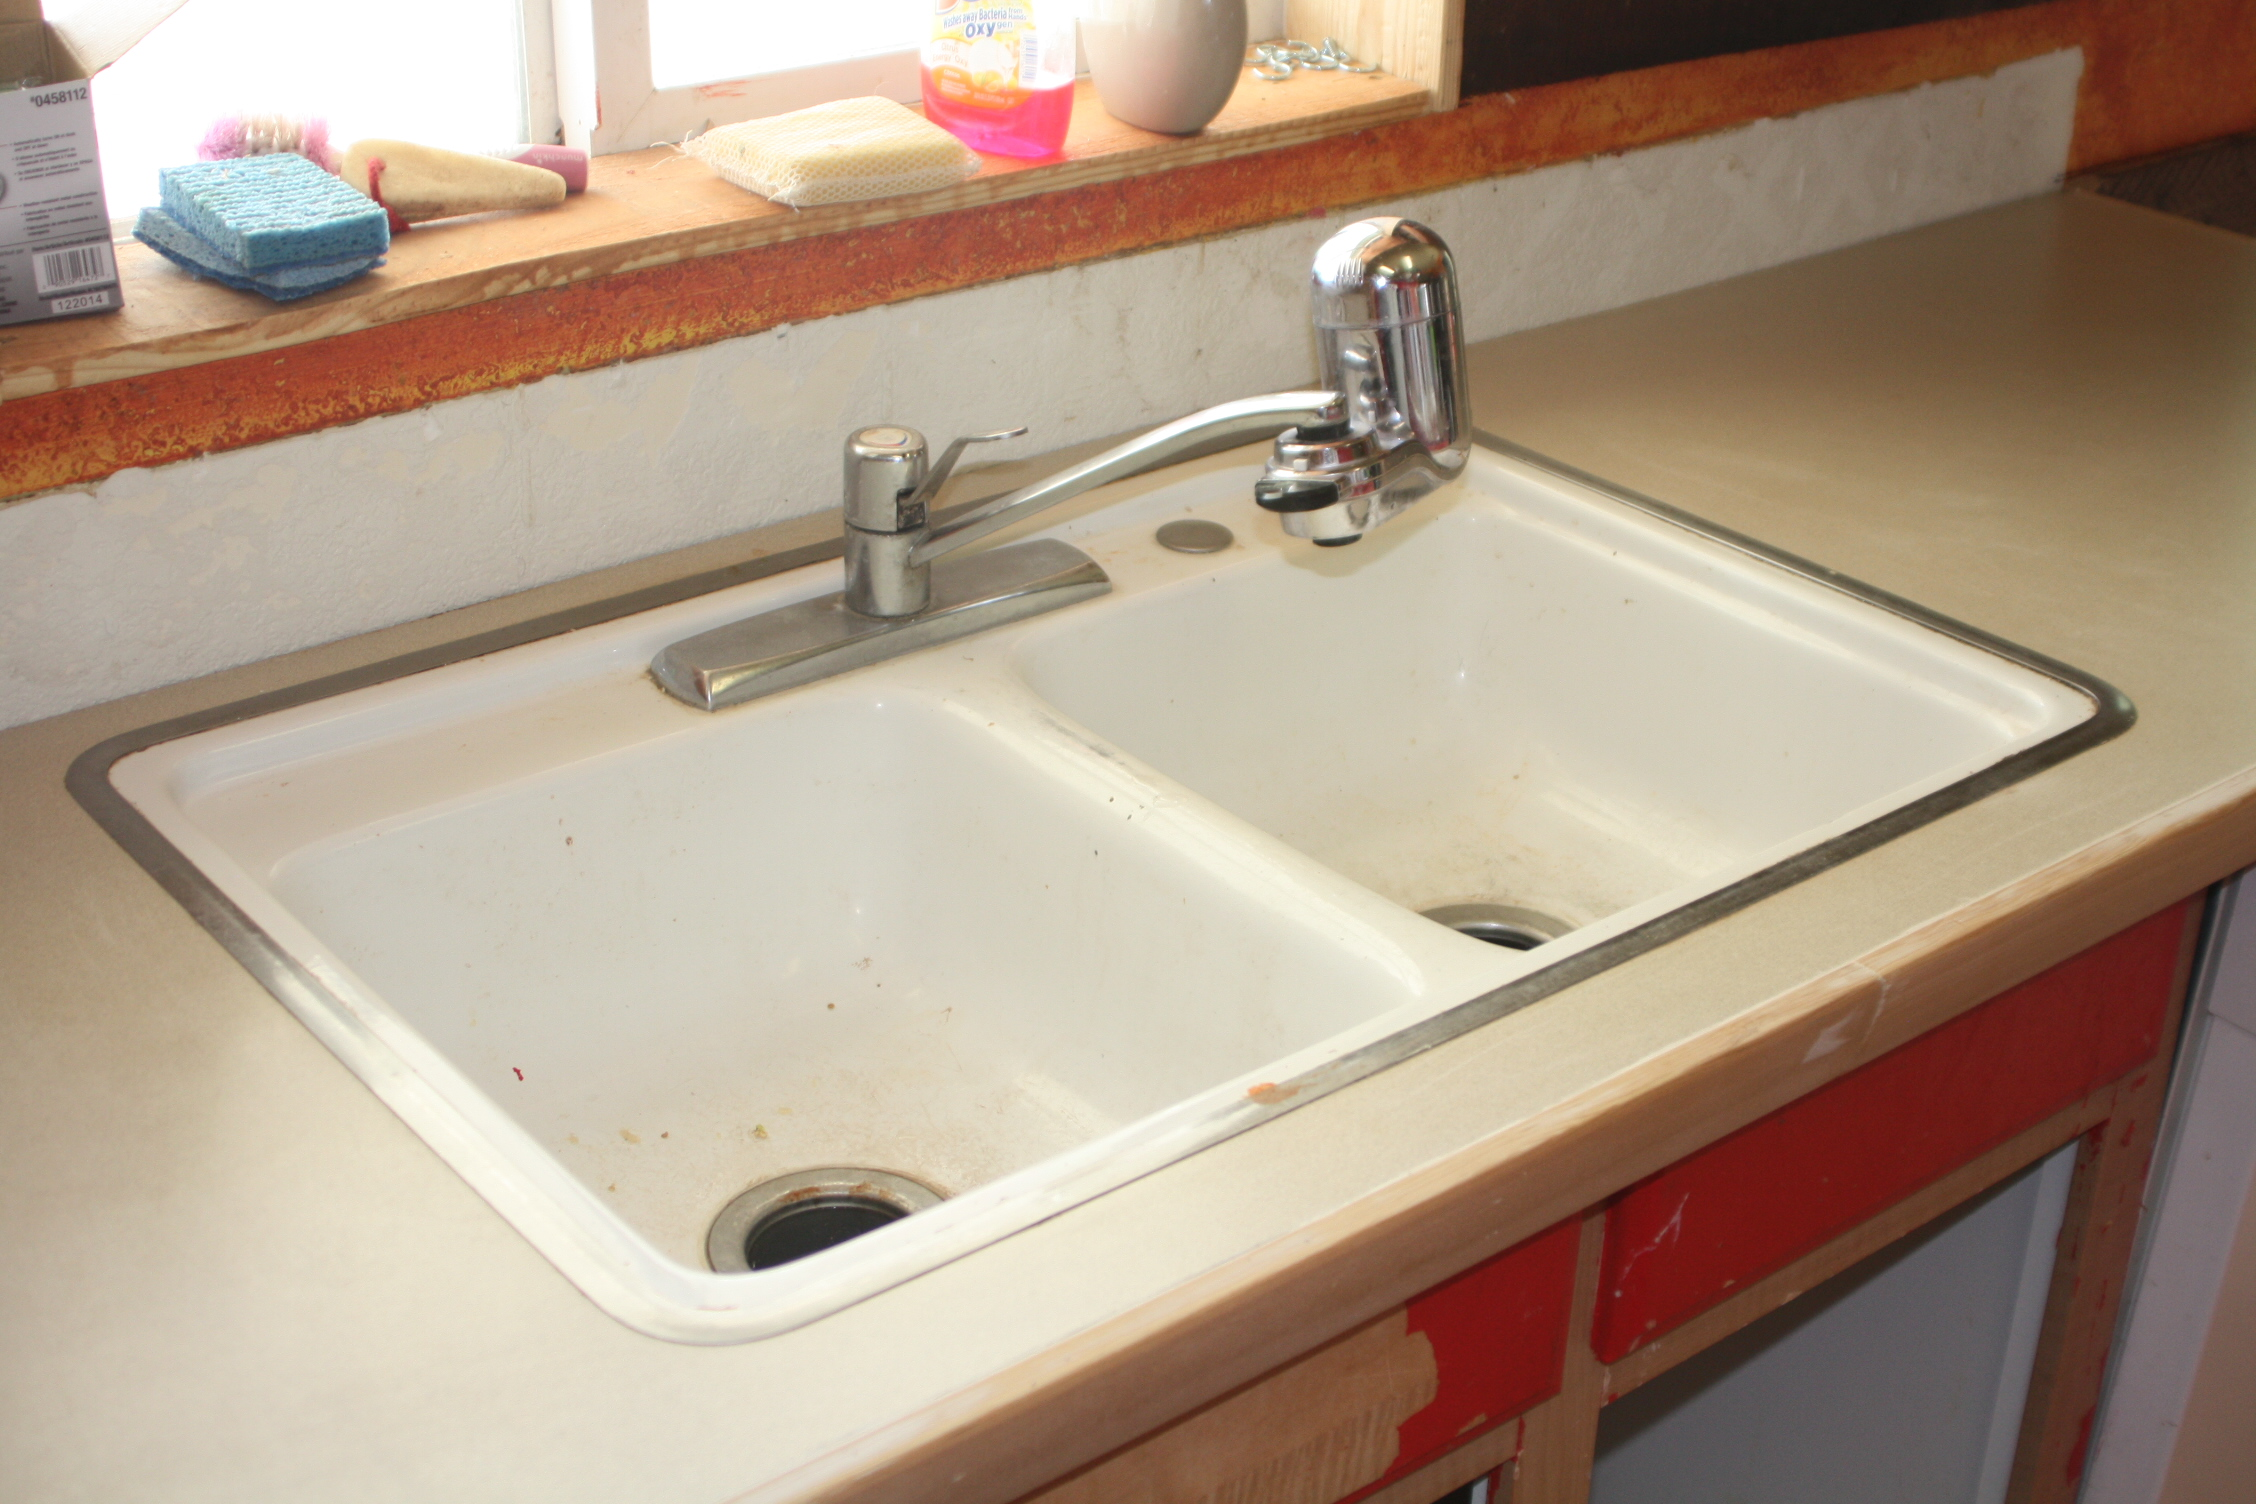 Kitchen Remodel Stage 1 DIY Concrete Counters with a New Sink and